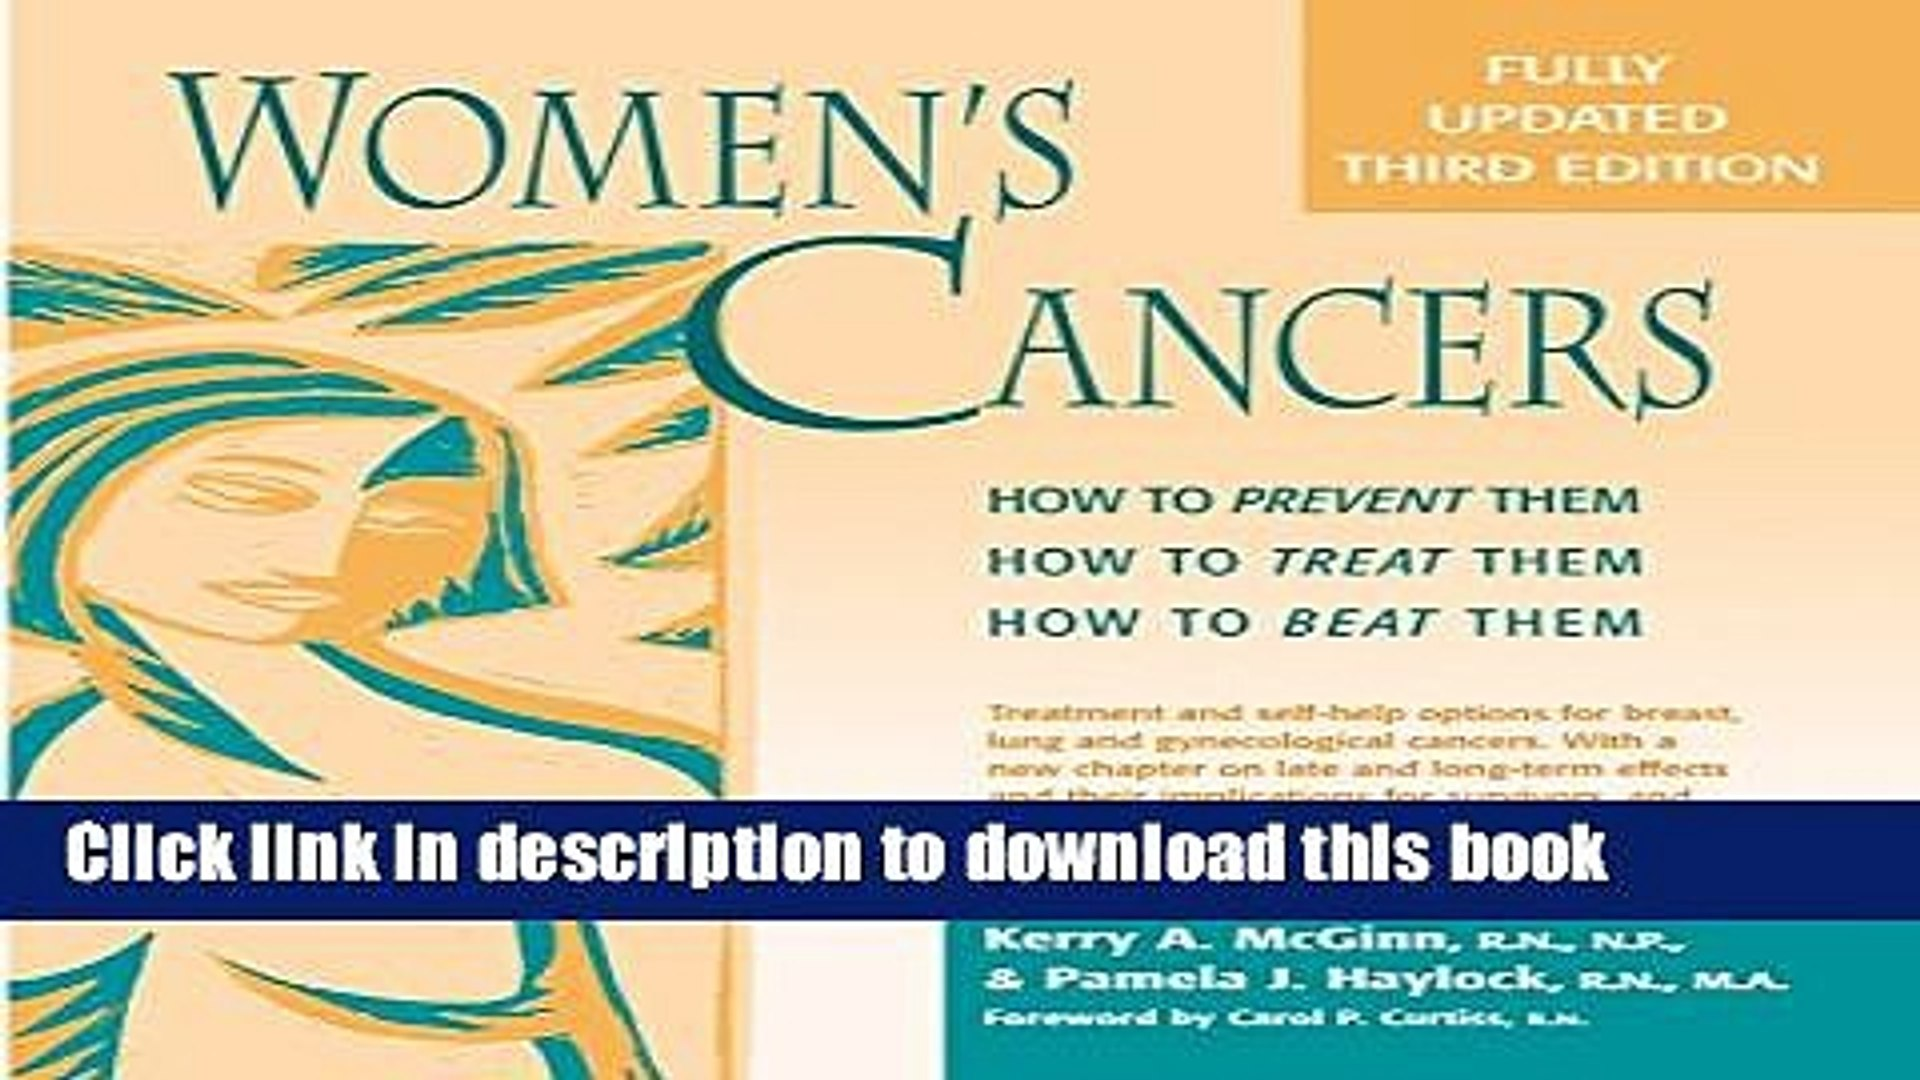 [Popular] Women s Cancers: How to Prevent Them, How to Treat Them, How to Beat Them (Hunter House